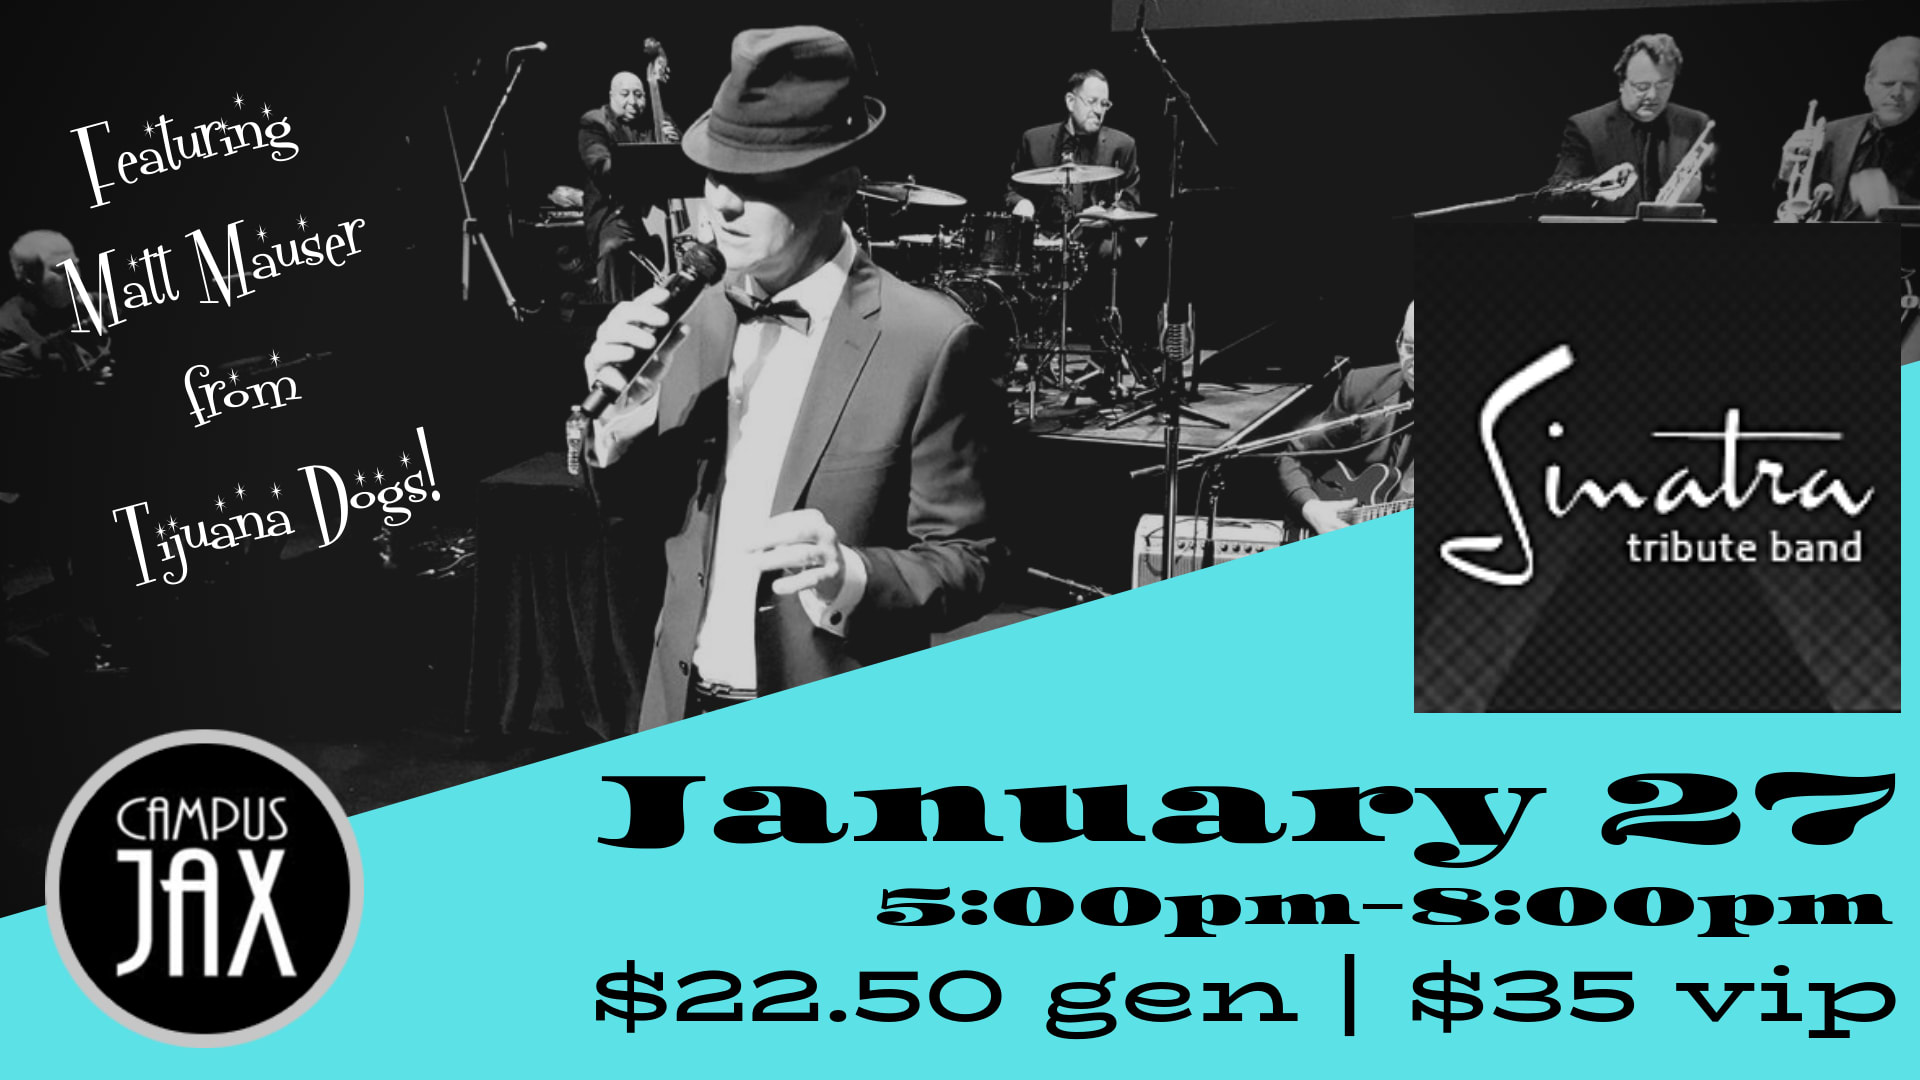 January 27 | SINATRA BIG BAND featuring MATT MAUSER is Sold Out and on Waitlist only!